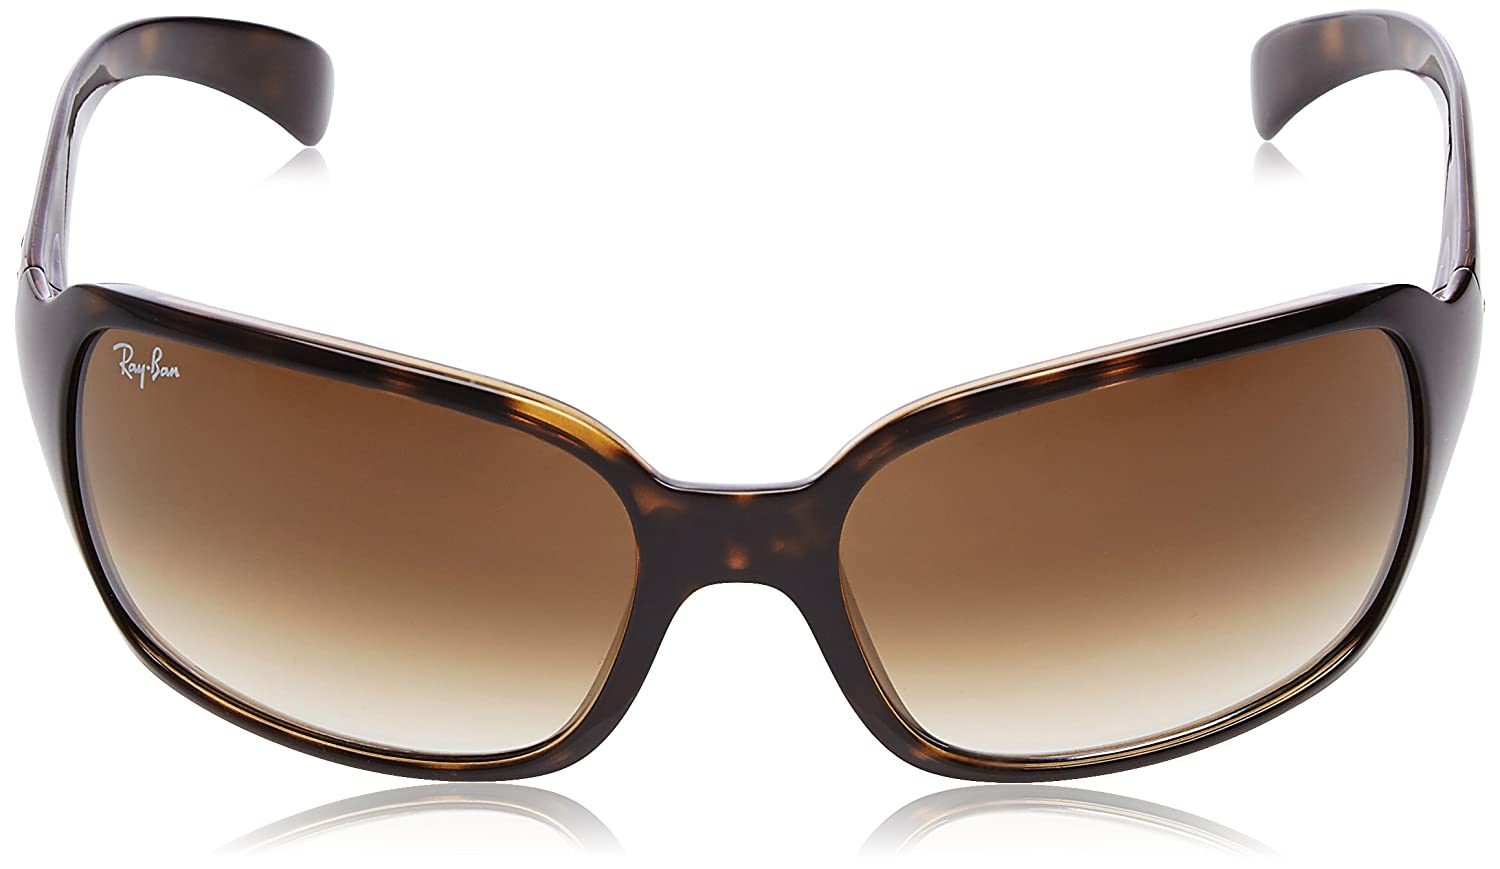 Ray-Ban RB4068 Square Sunglasses, Light Havana/Brown Gradient, 60 mm